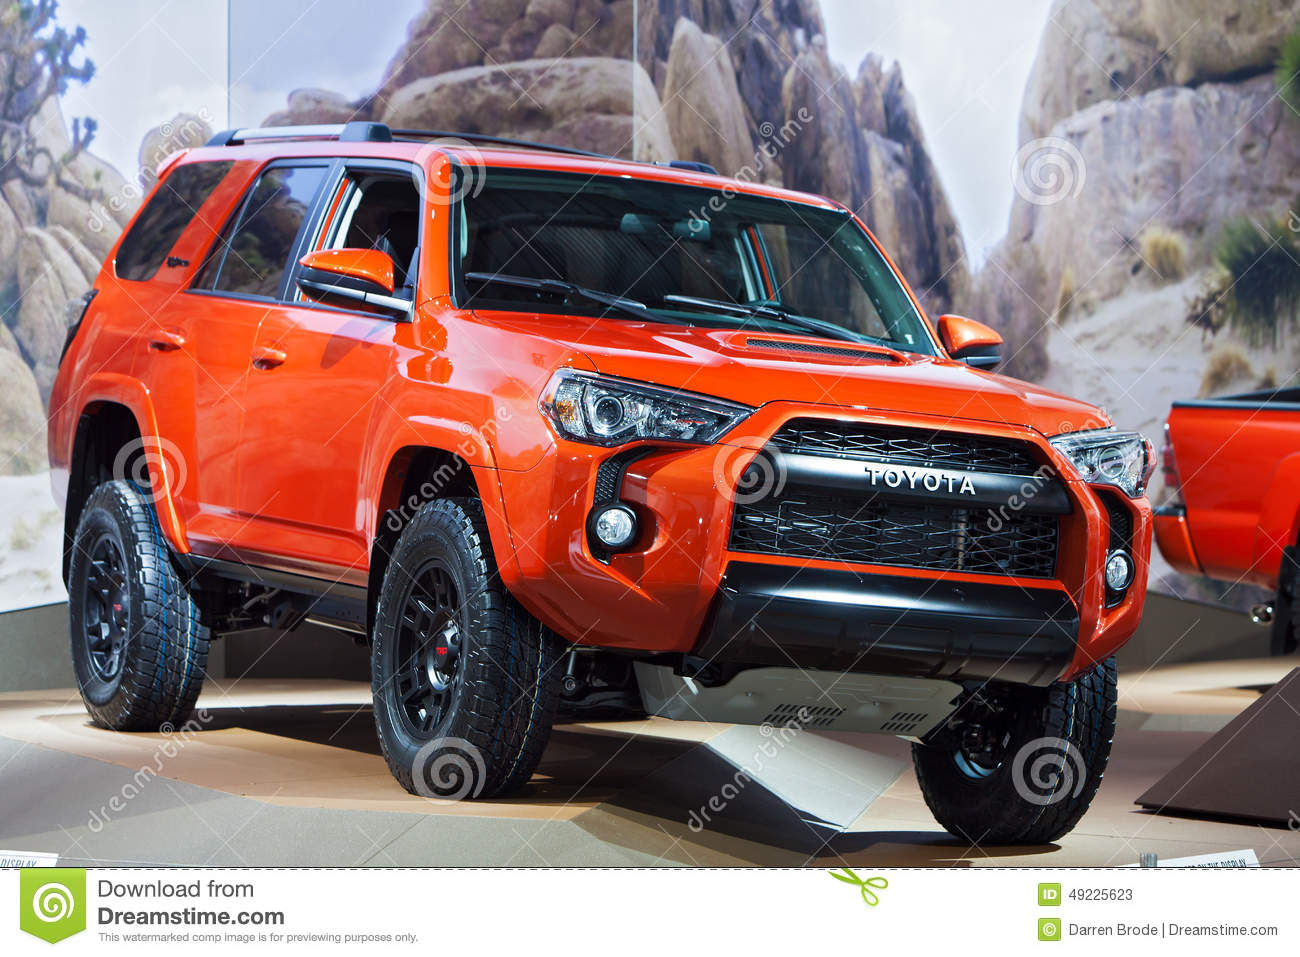 Toyota 4Runner Lifted >> Toyota Four Runner TRD PRO 2015 Detroit Auto Show Editorial Stock Photo - Image: 49225623